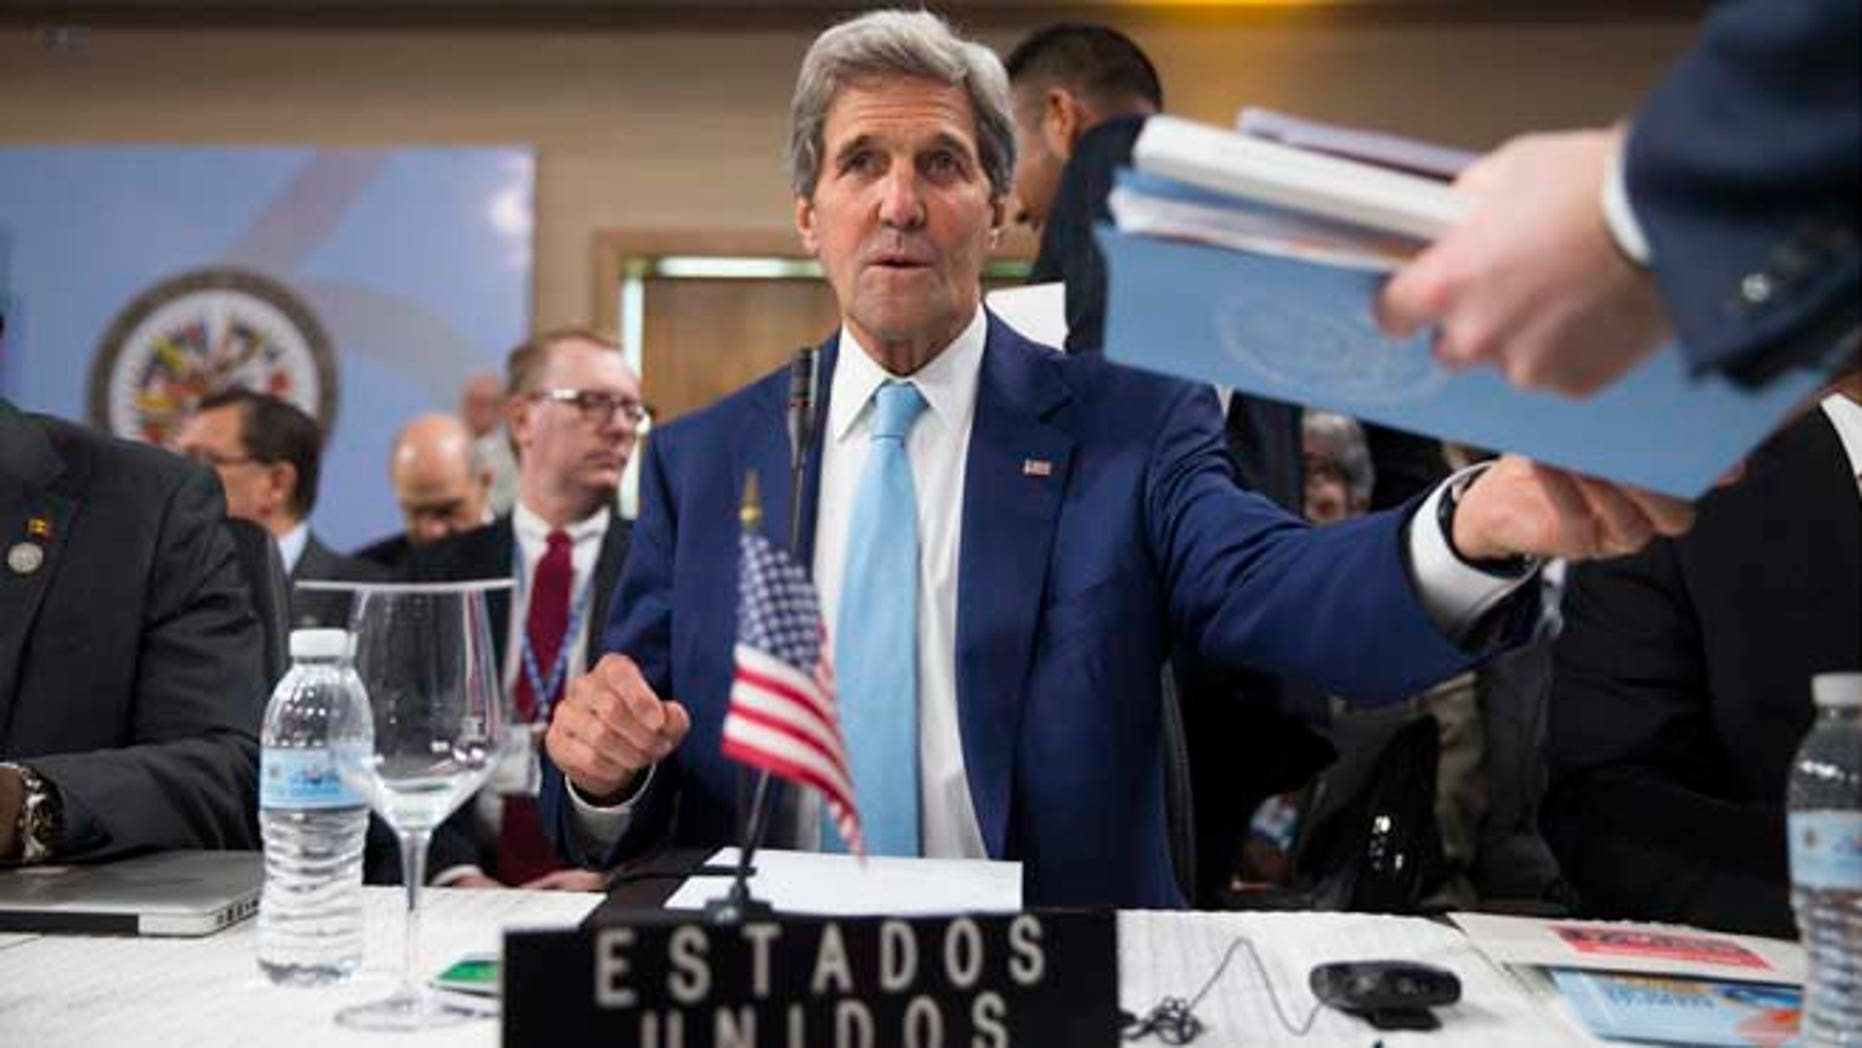 Secretary of State John Kerry is handed notes as he sits down for the General Assembly of the Organization of American States, Tuesday, June 14, 2016, in Santo Domingo, Dominican Republic. (AP Photo/Evan Vucci, Pool)